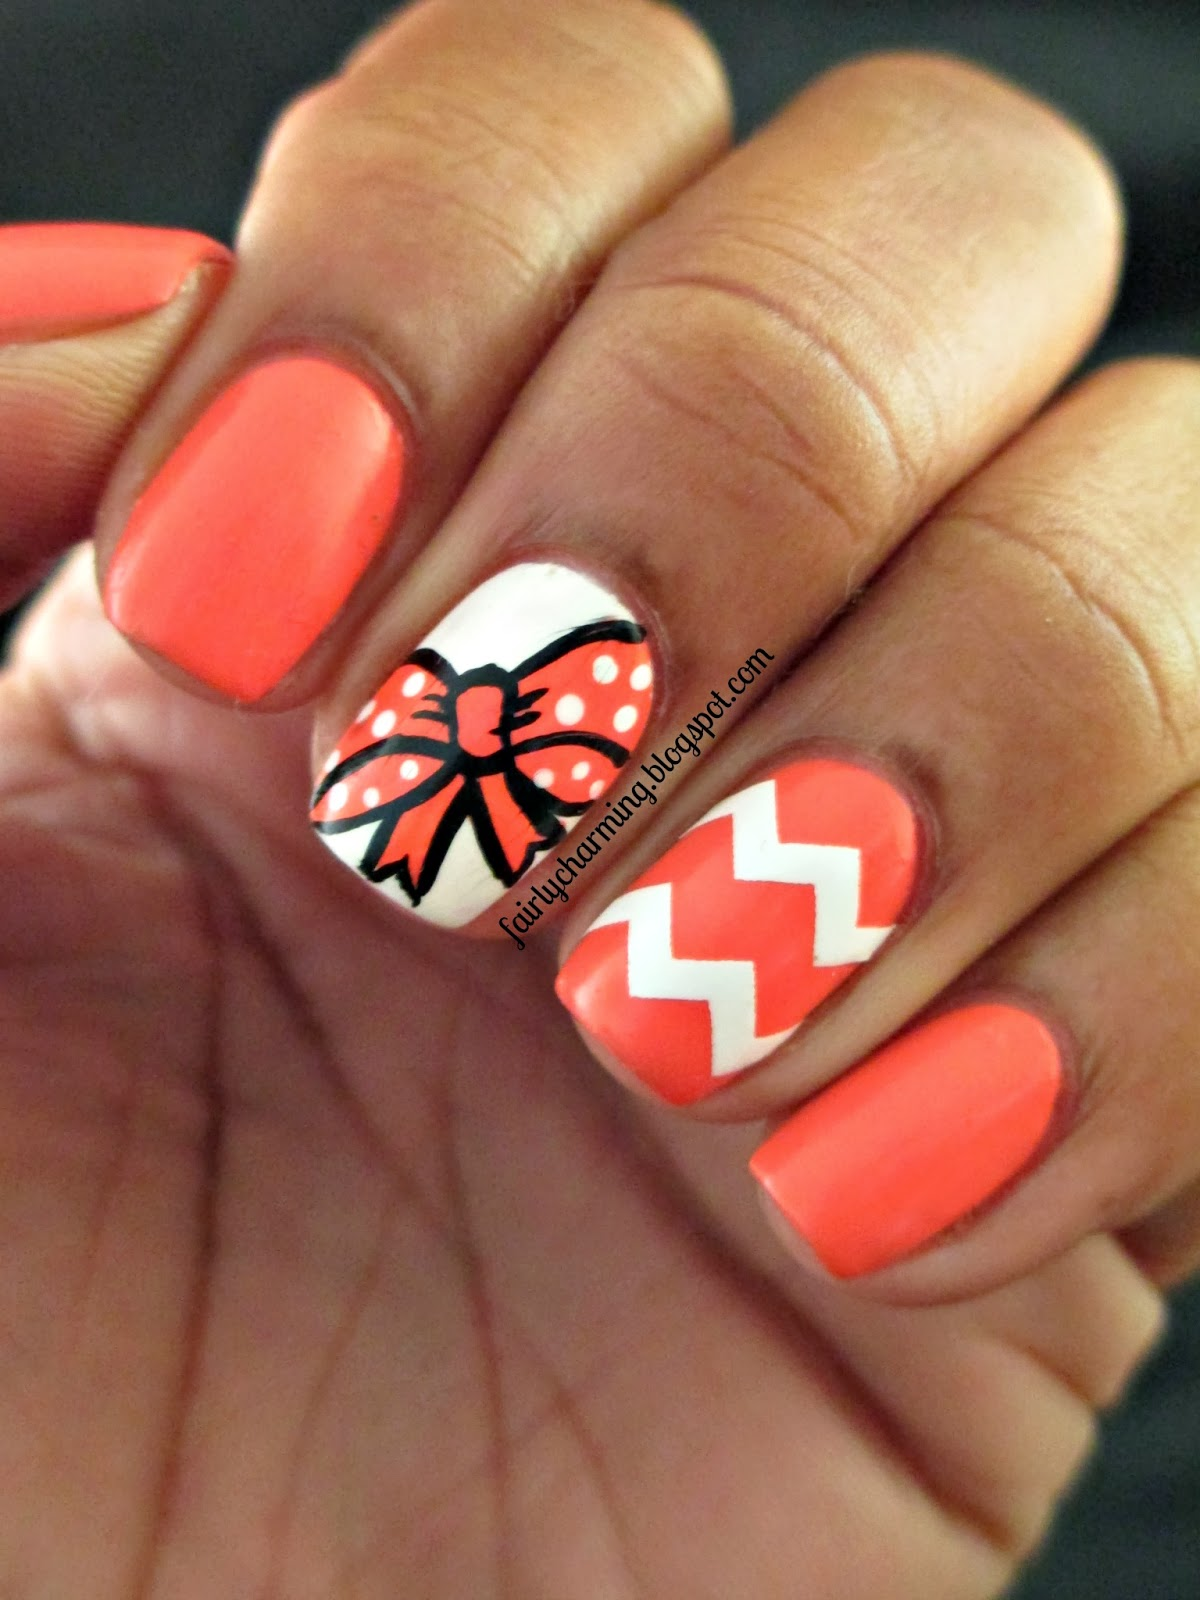 53 most adorable orange and white nail art design ideas orange and white chevron and bow design nail art prinsesfo Choice Image